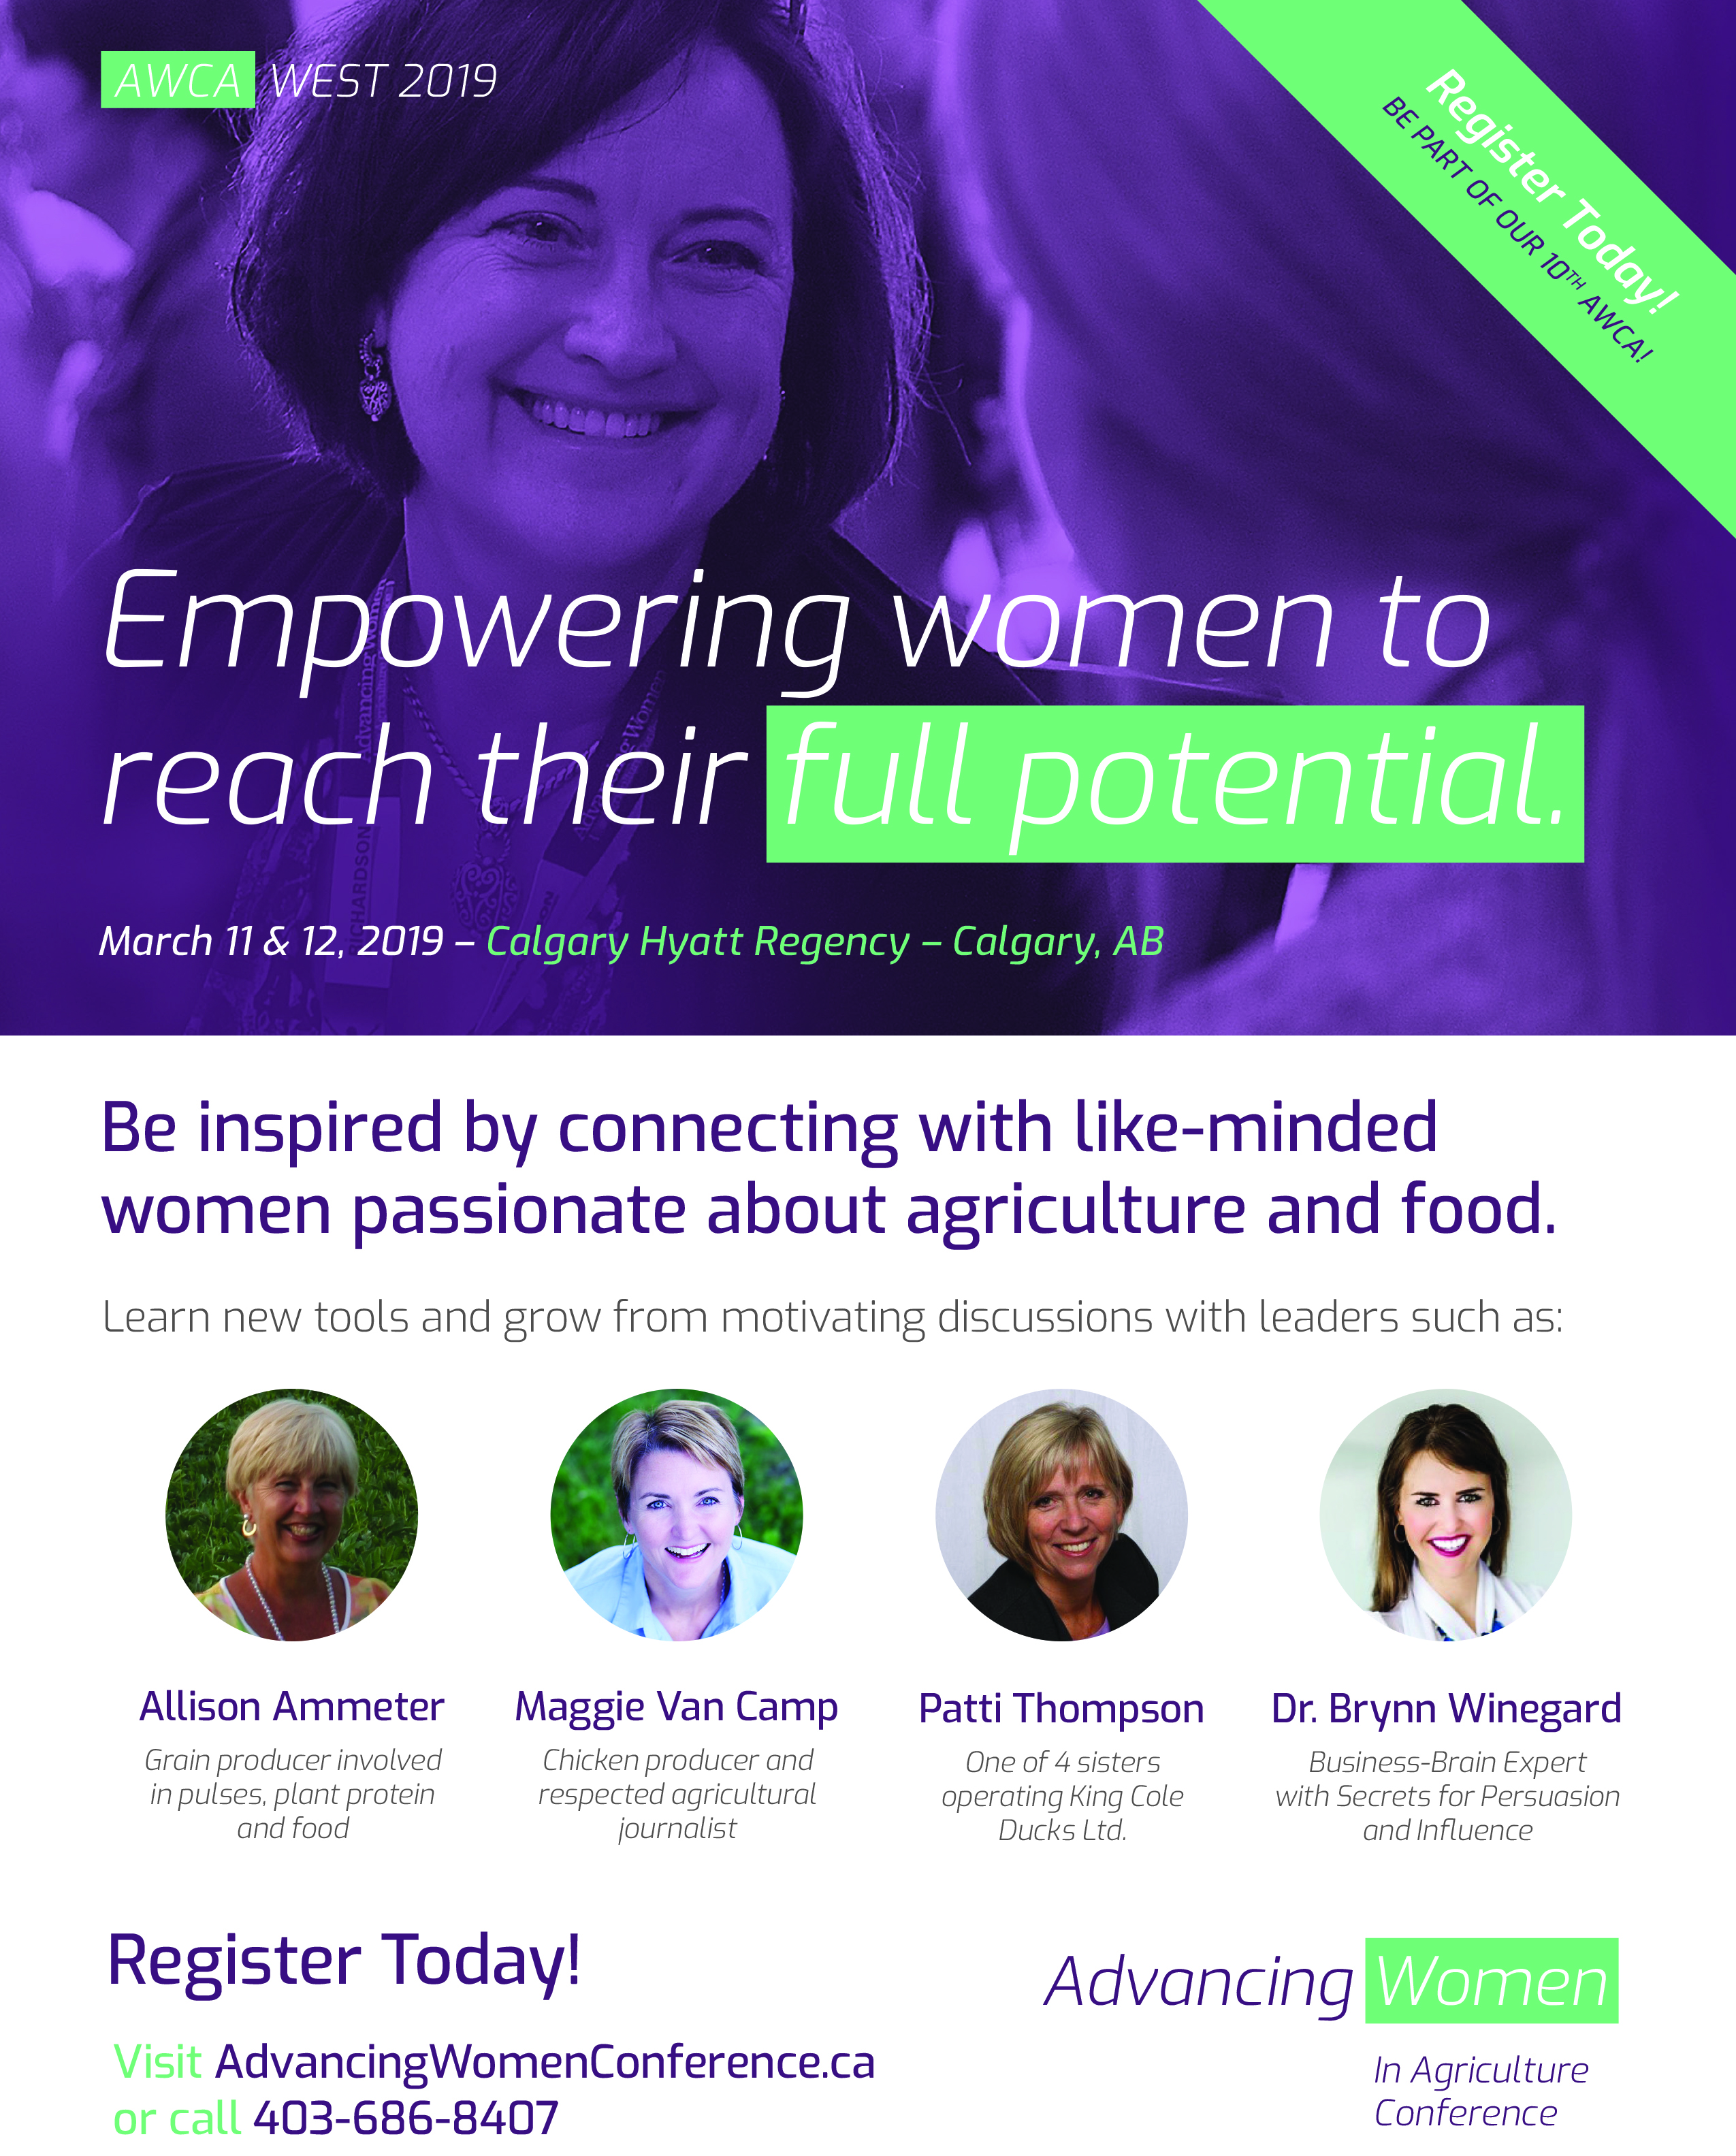 Advancing Women in Agriculture Conference | March 11 & 12, 2019